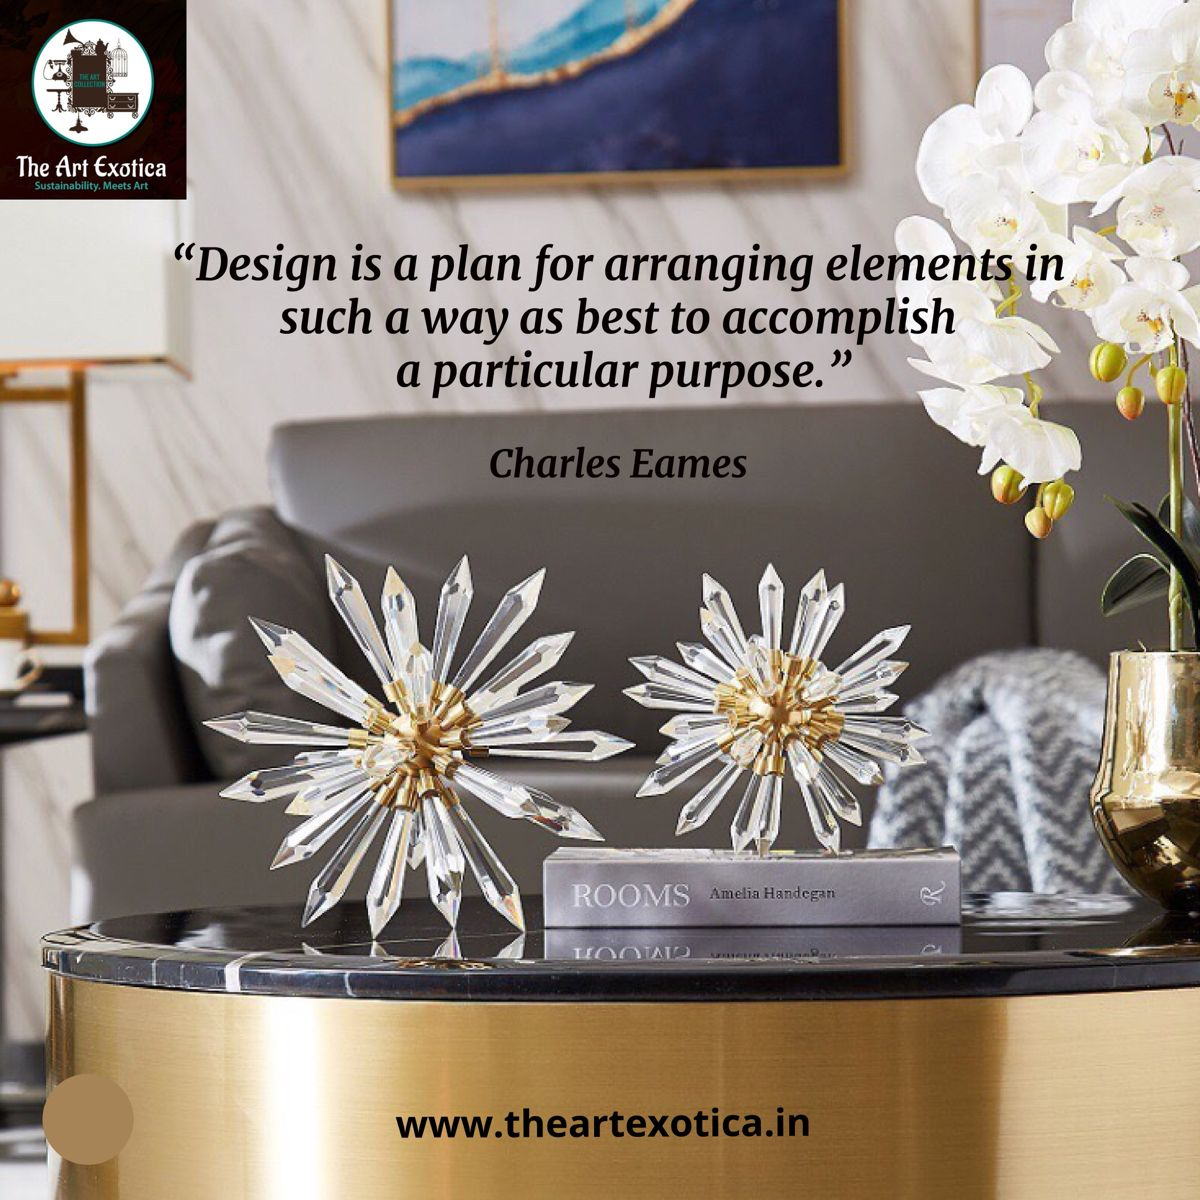 What is your definition of design? We agree with this one from Charles Eames. #HomeWithRue #HowIHaven #IDCOatHome #GreigeStyle #OneRoomChallenge #CurrentDesignSituation #ApartmentTherapy #HouseEnvy #MyDomaine #AmbularInteriorsAintGotNothingOnMe